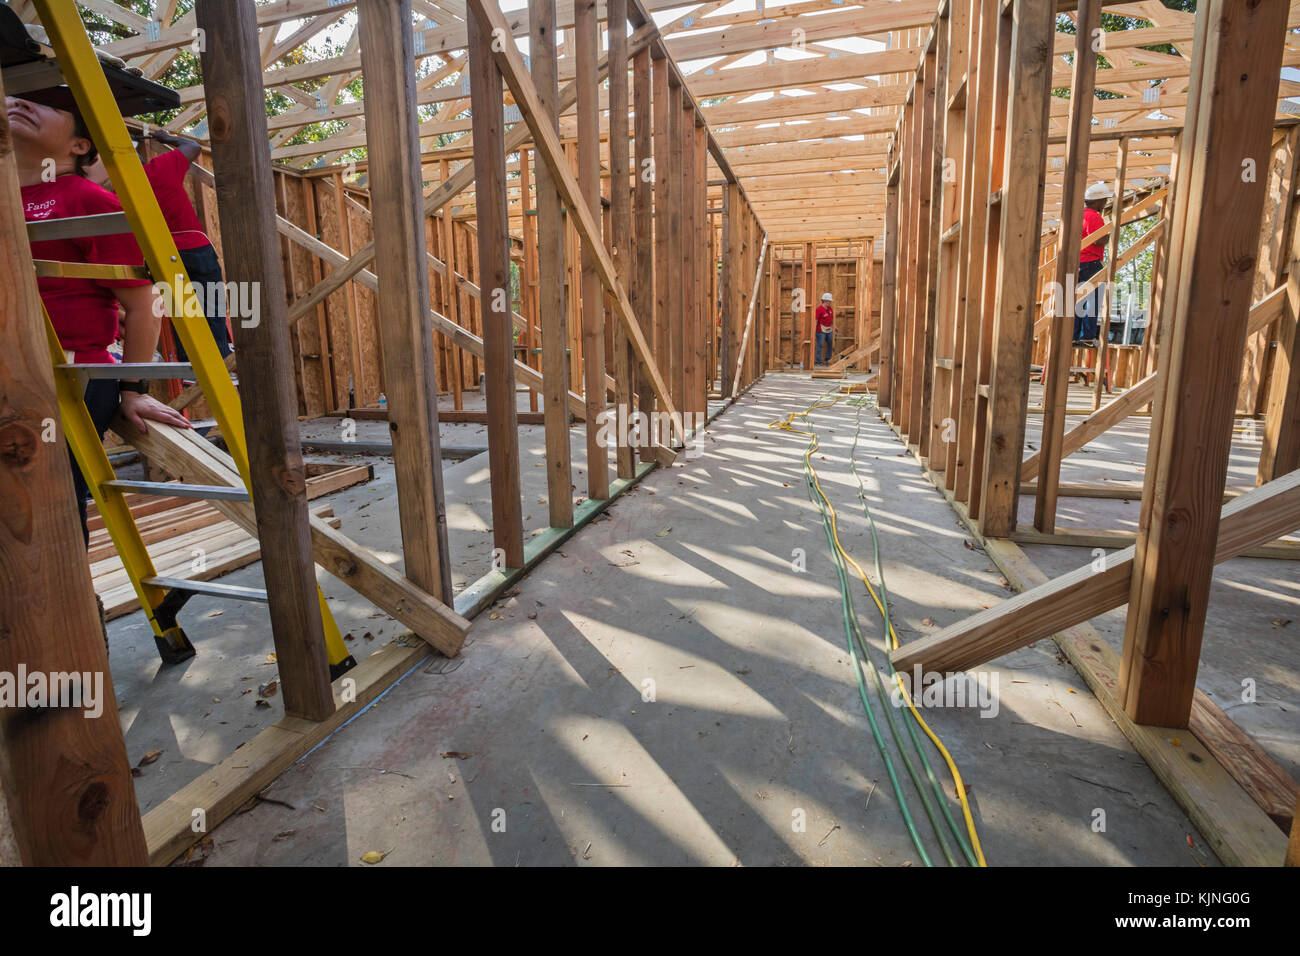 Houston, Texas - Volunteers from Wells Fargo Bank help build a Habitat for Humanity house for a low-income family. Stock Photo